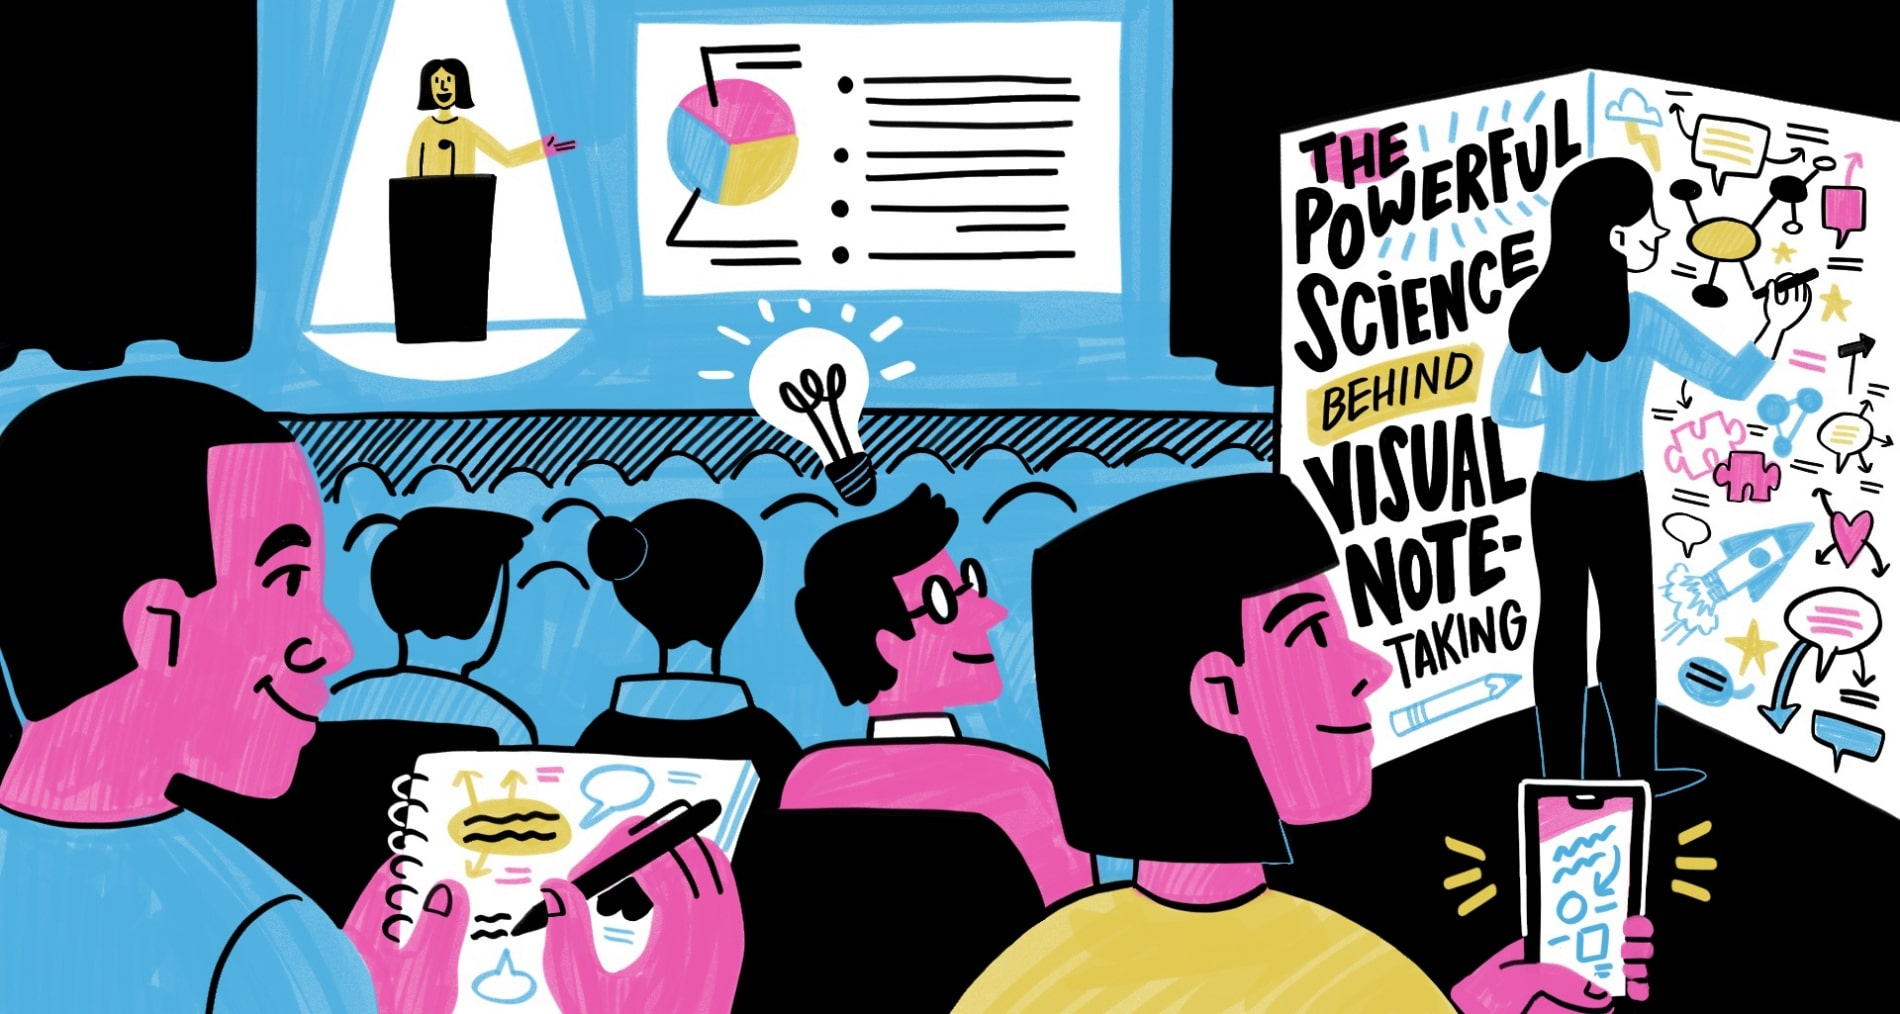 The Powerful Science Behind Visual Note-Taking